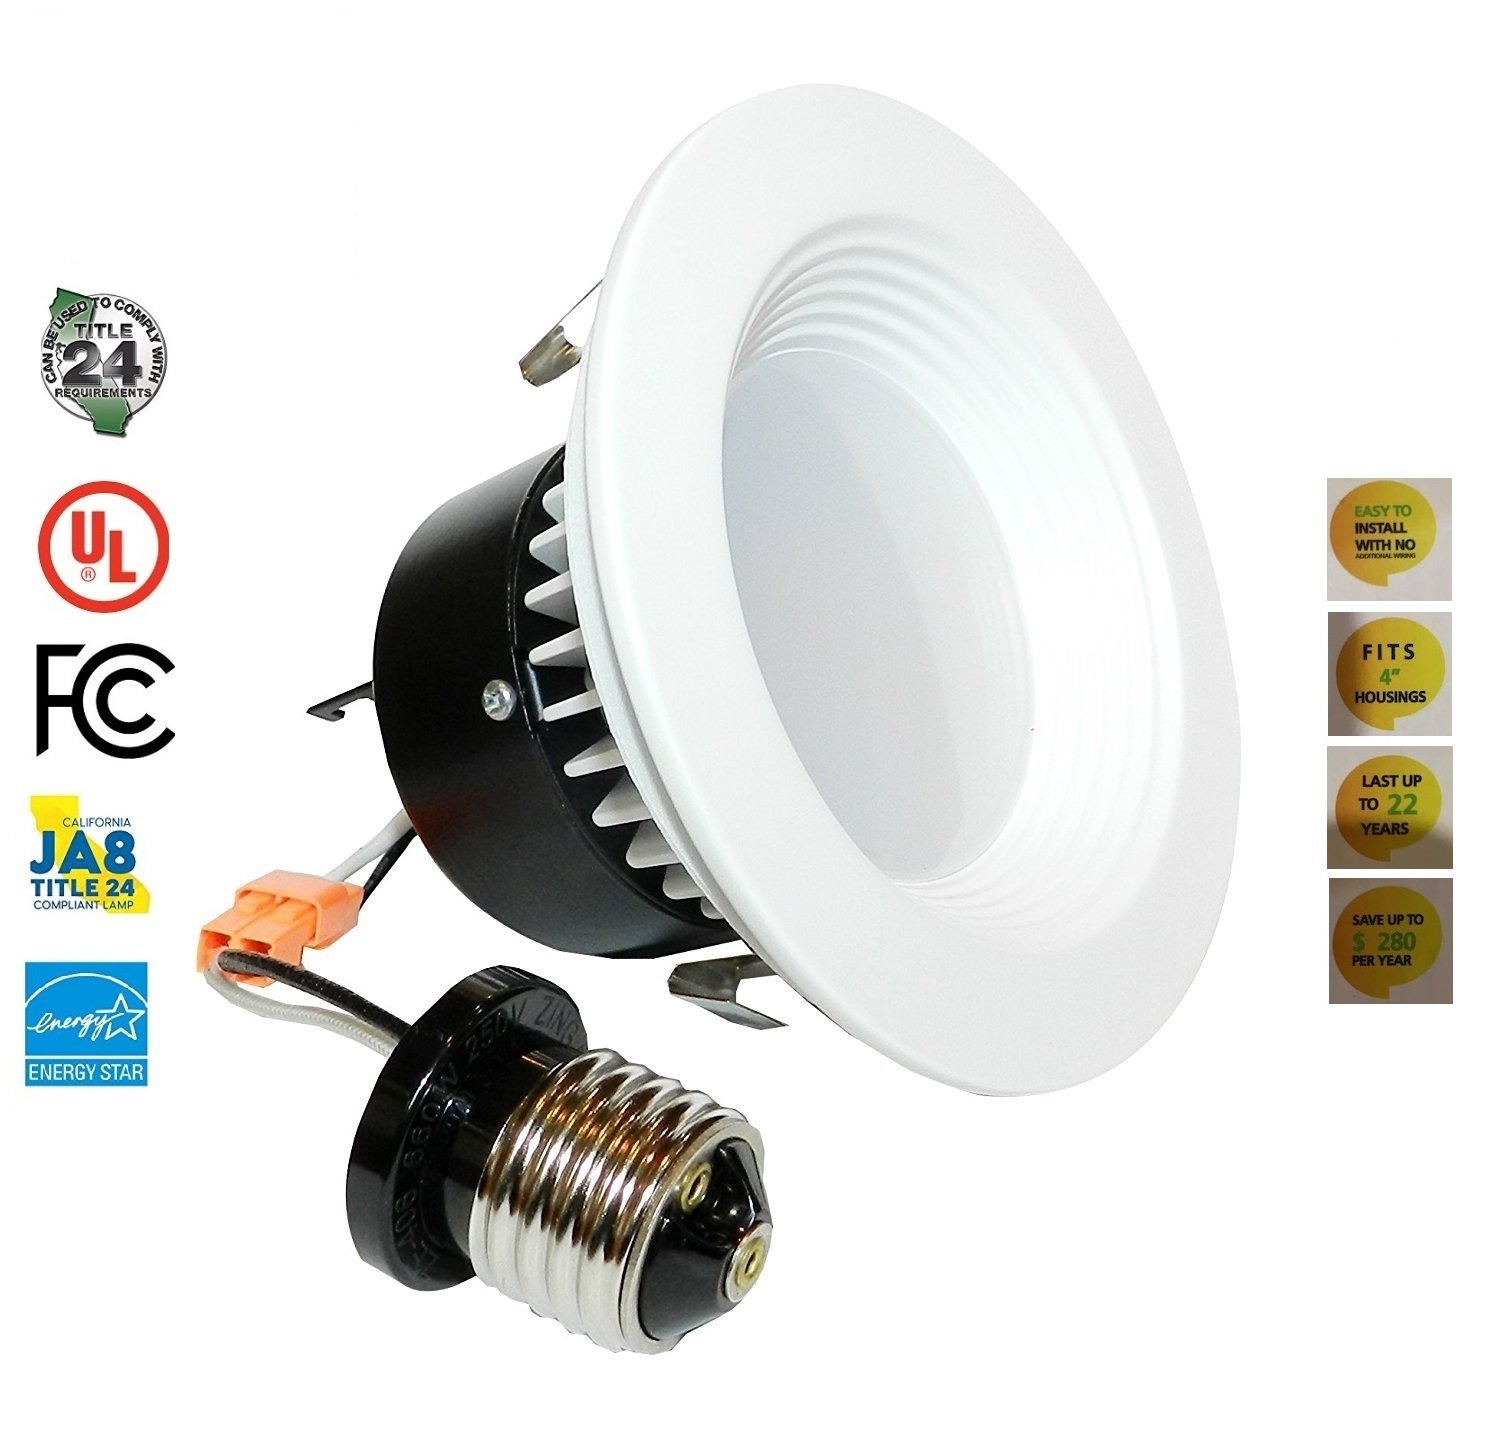 4'' LED Recessed Retrofit Kit Dimmable-Baffle, Downlight Fixture with LED Power Supply, Combined Single Unit, 540 Lumens (40 Units/ 1 Case)